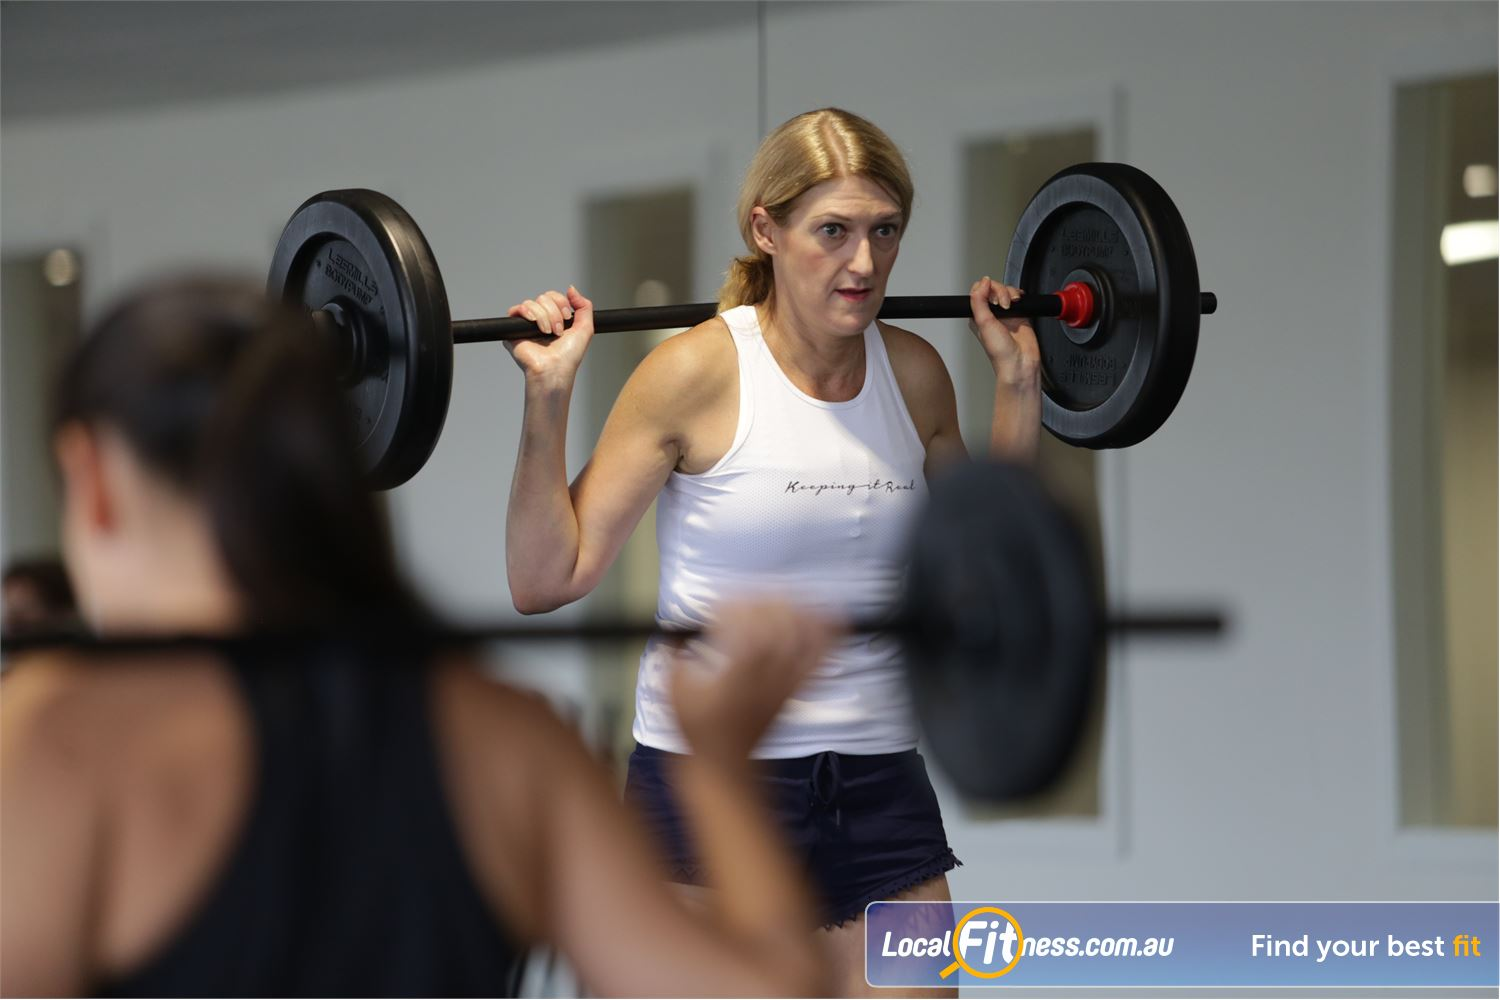 Fernwood Fitness Shepparton 24 hour Shepparton gym with a female only safe environment.